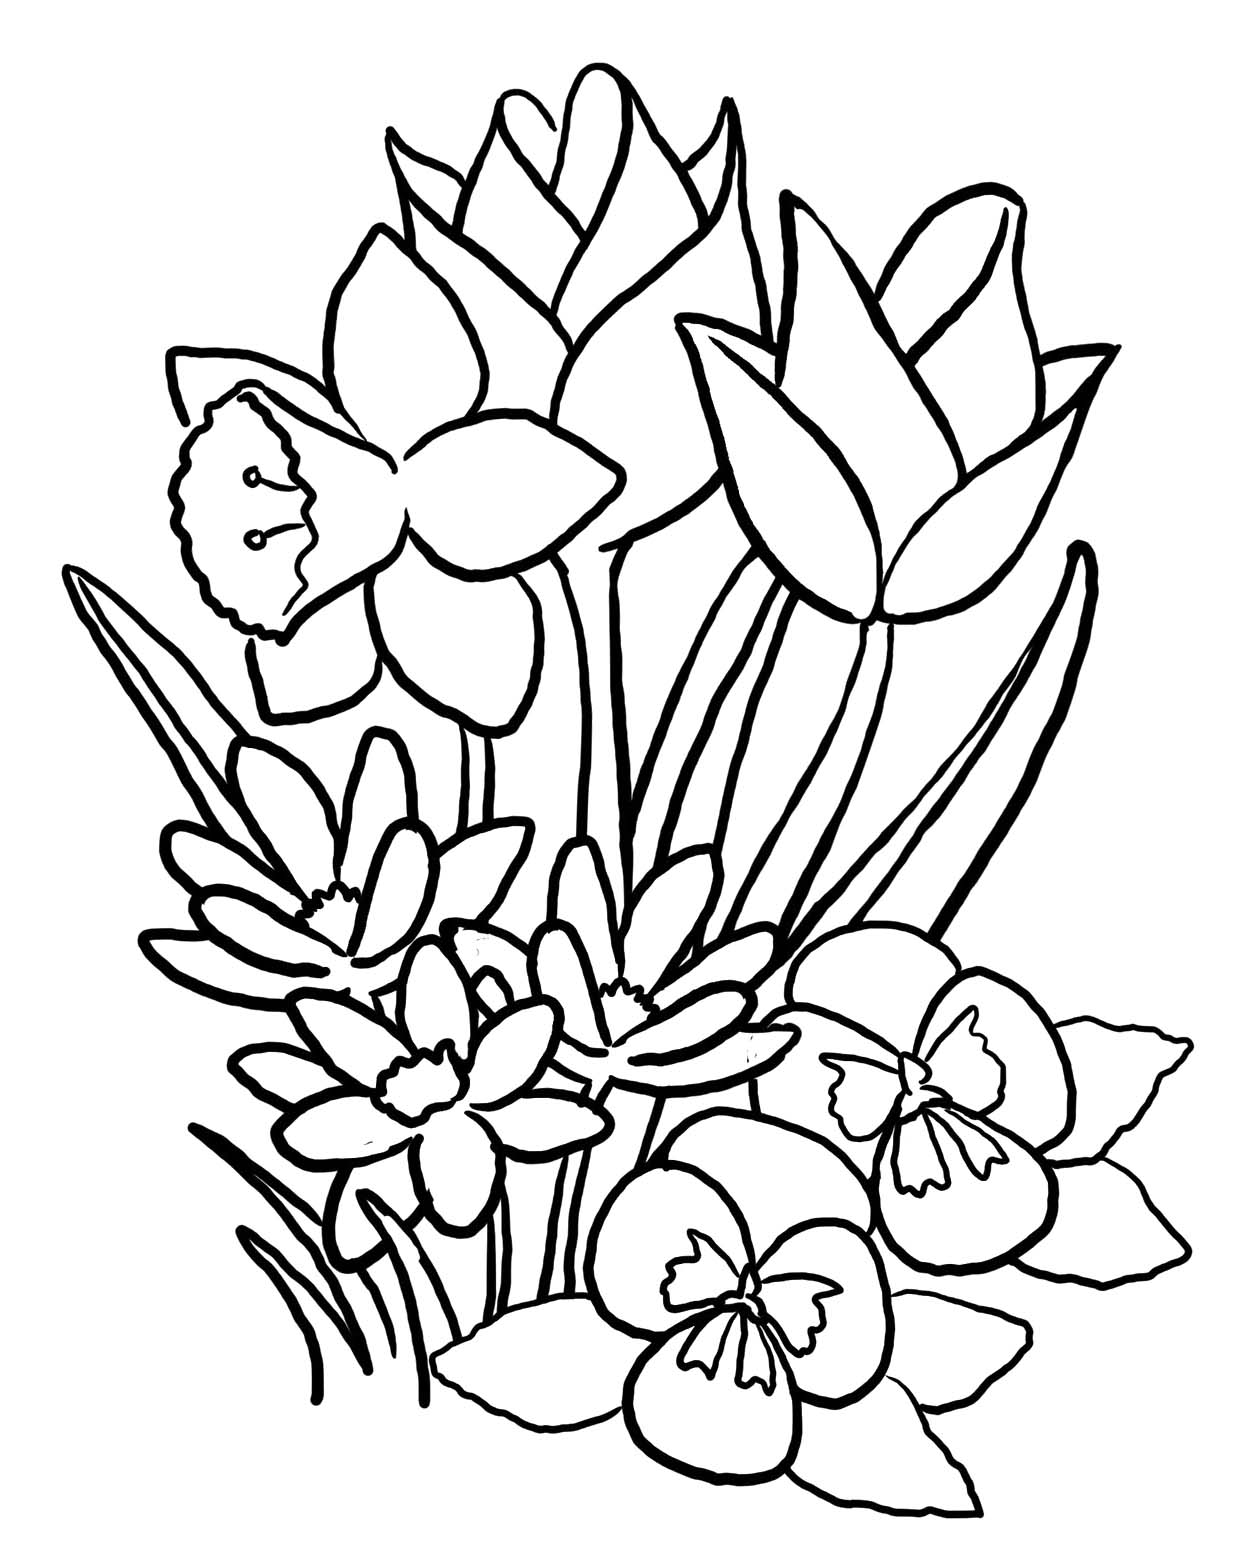 Spring coloring pages for 4th graders - Flower Pictures To Print And Color